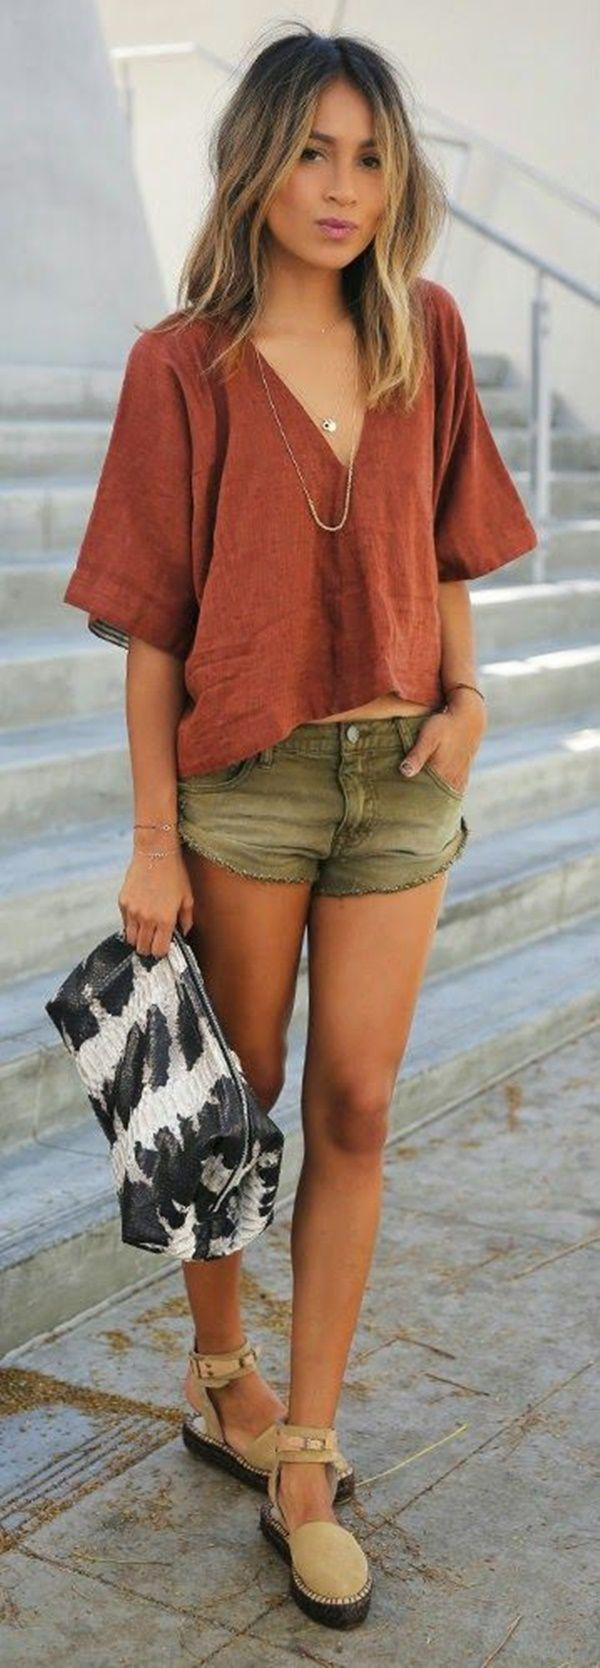 Best Summer Outfits Ideas That Can You Copy